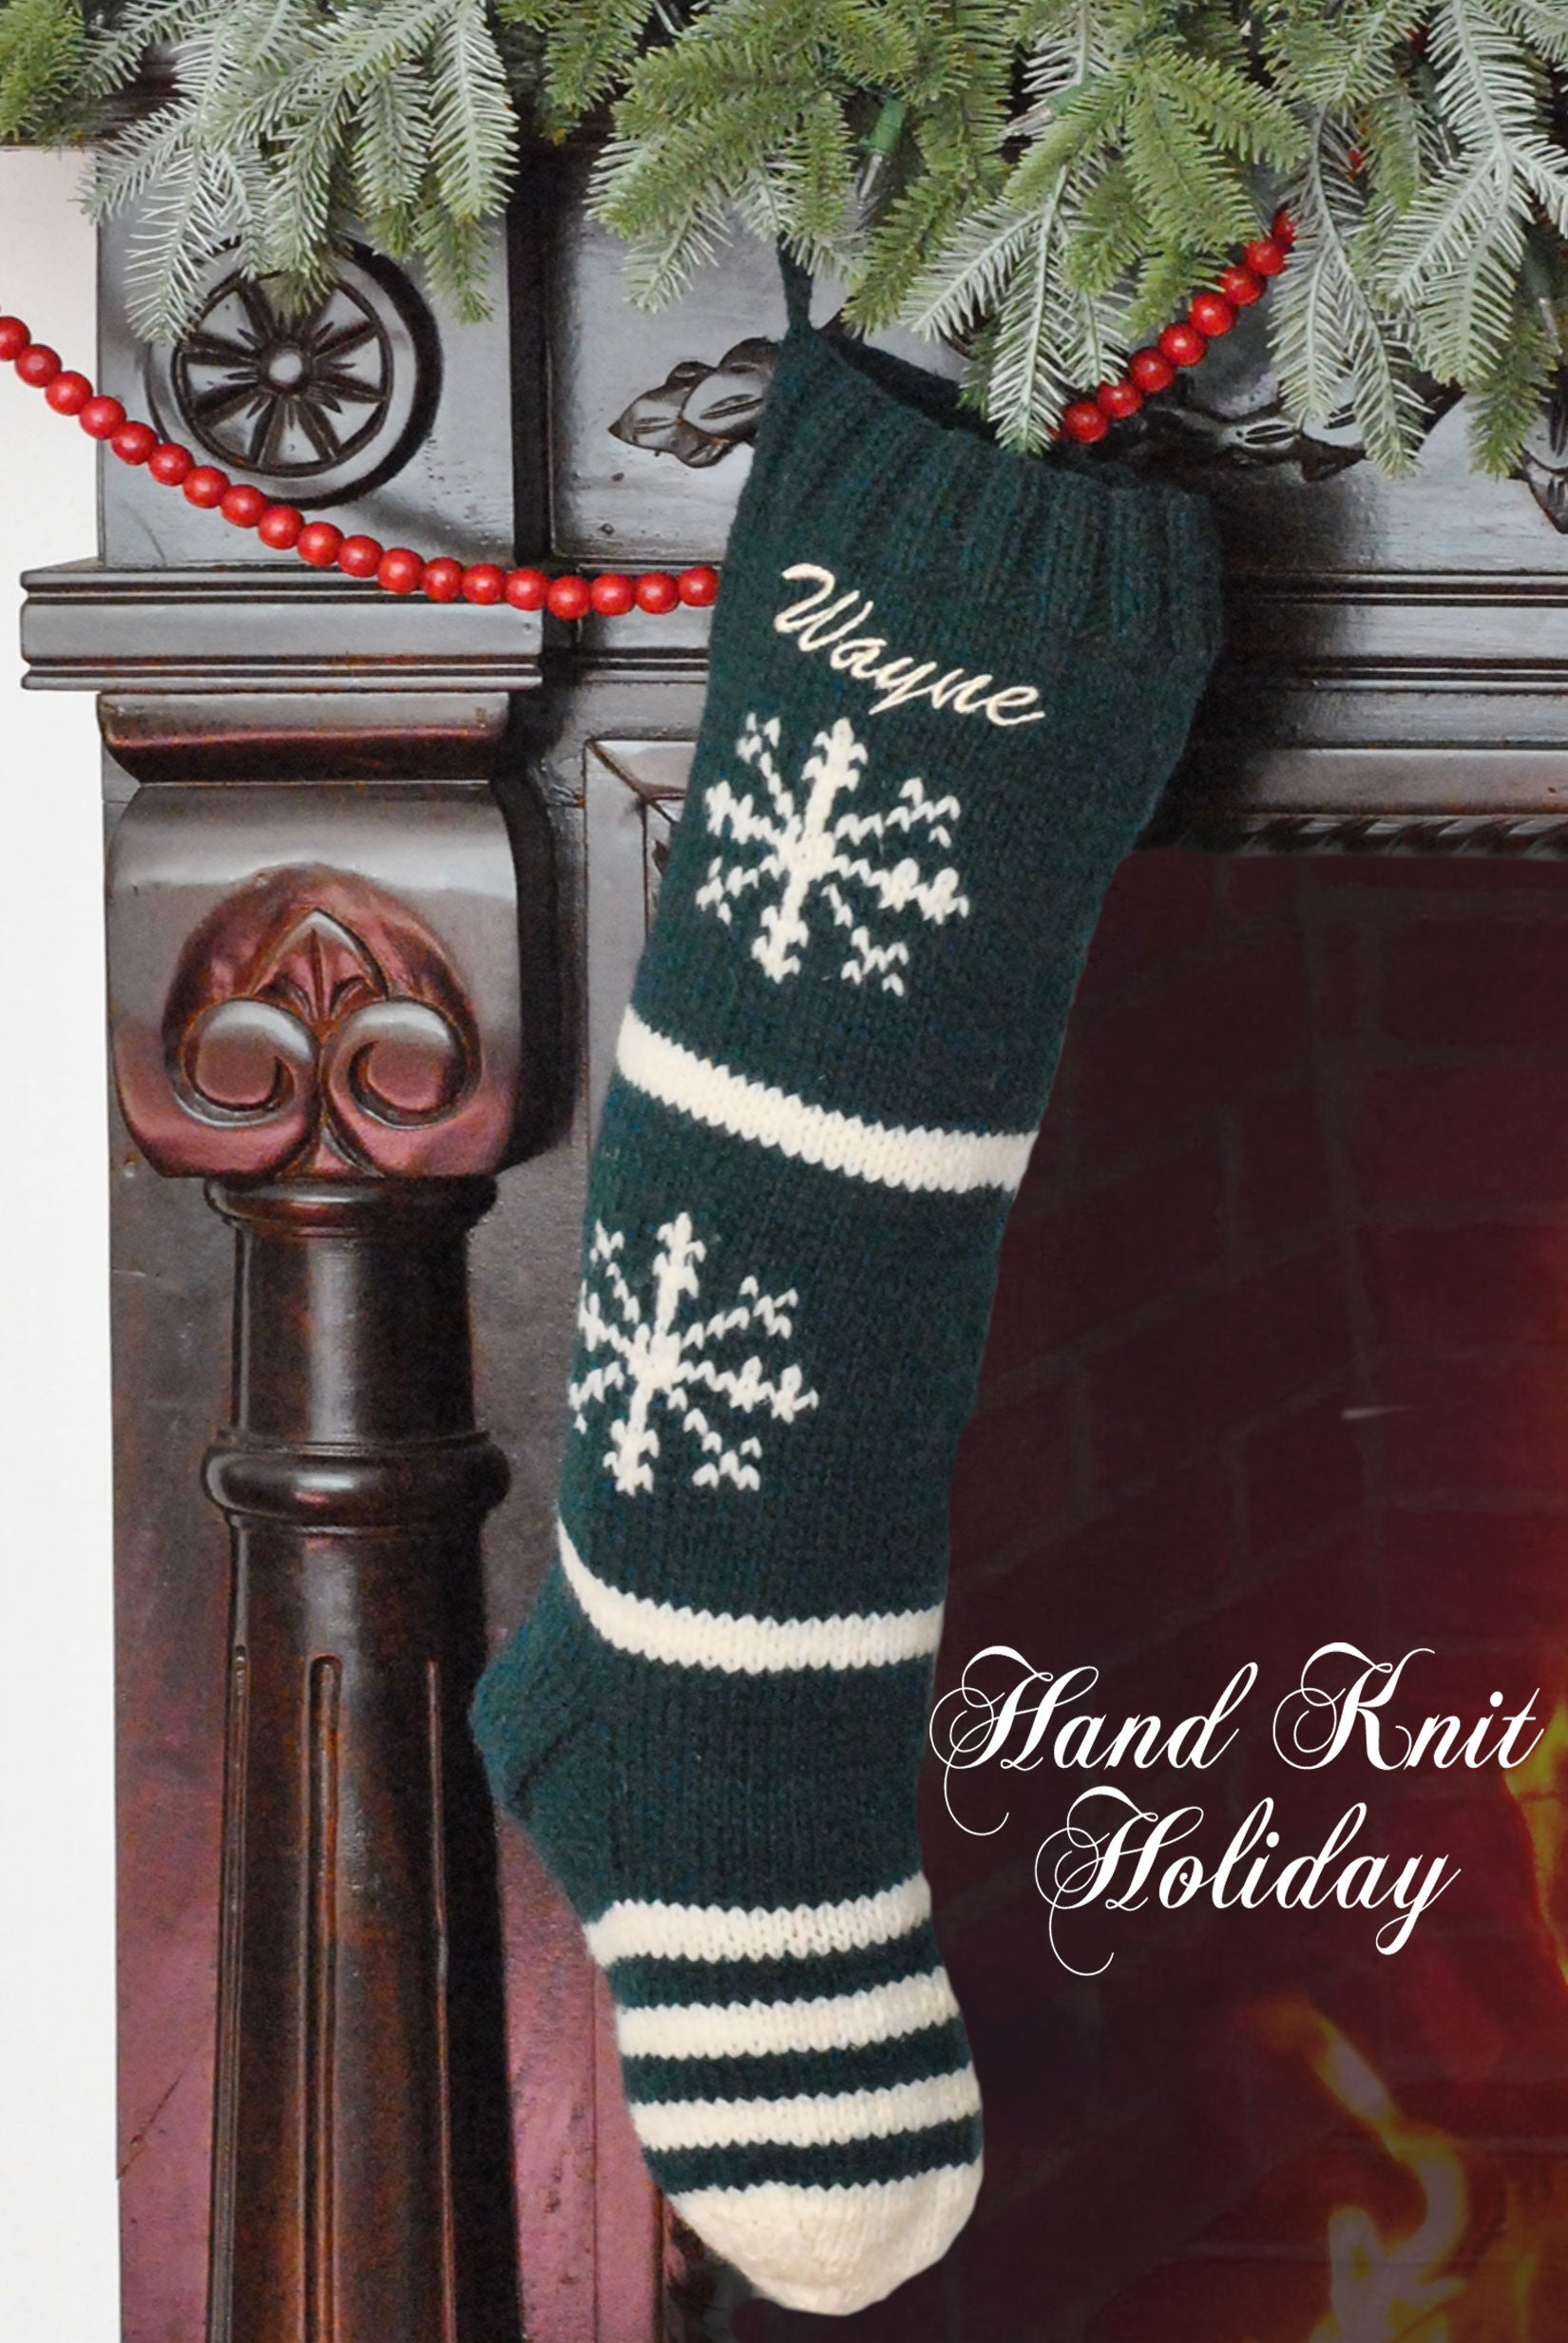 Green & White Snowflake Christmas Stocking – Hand Knit Holiday